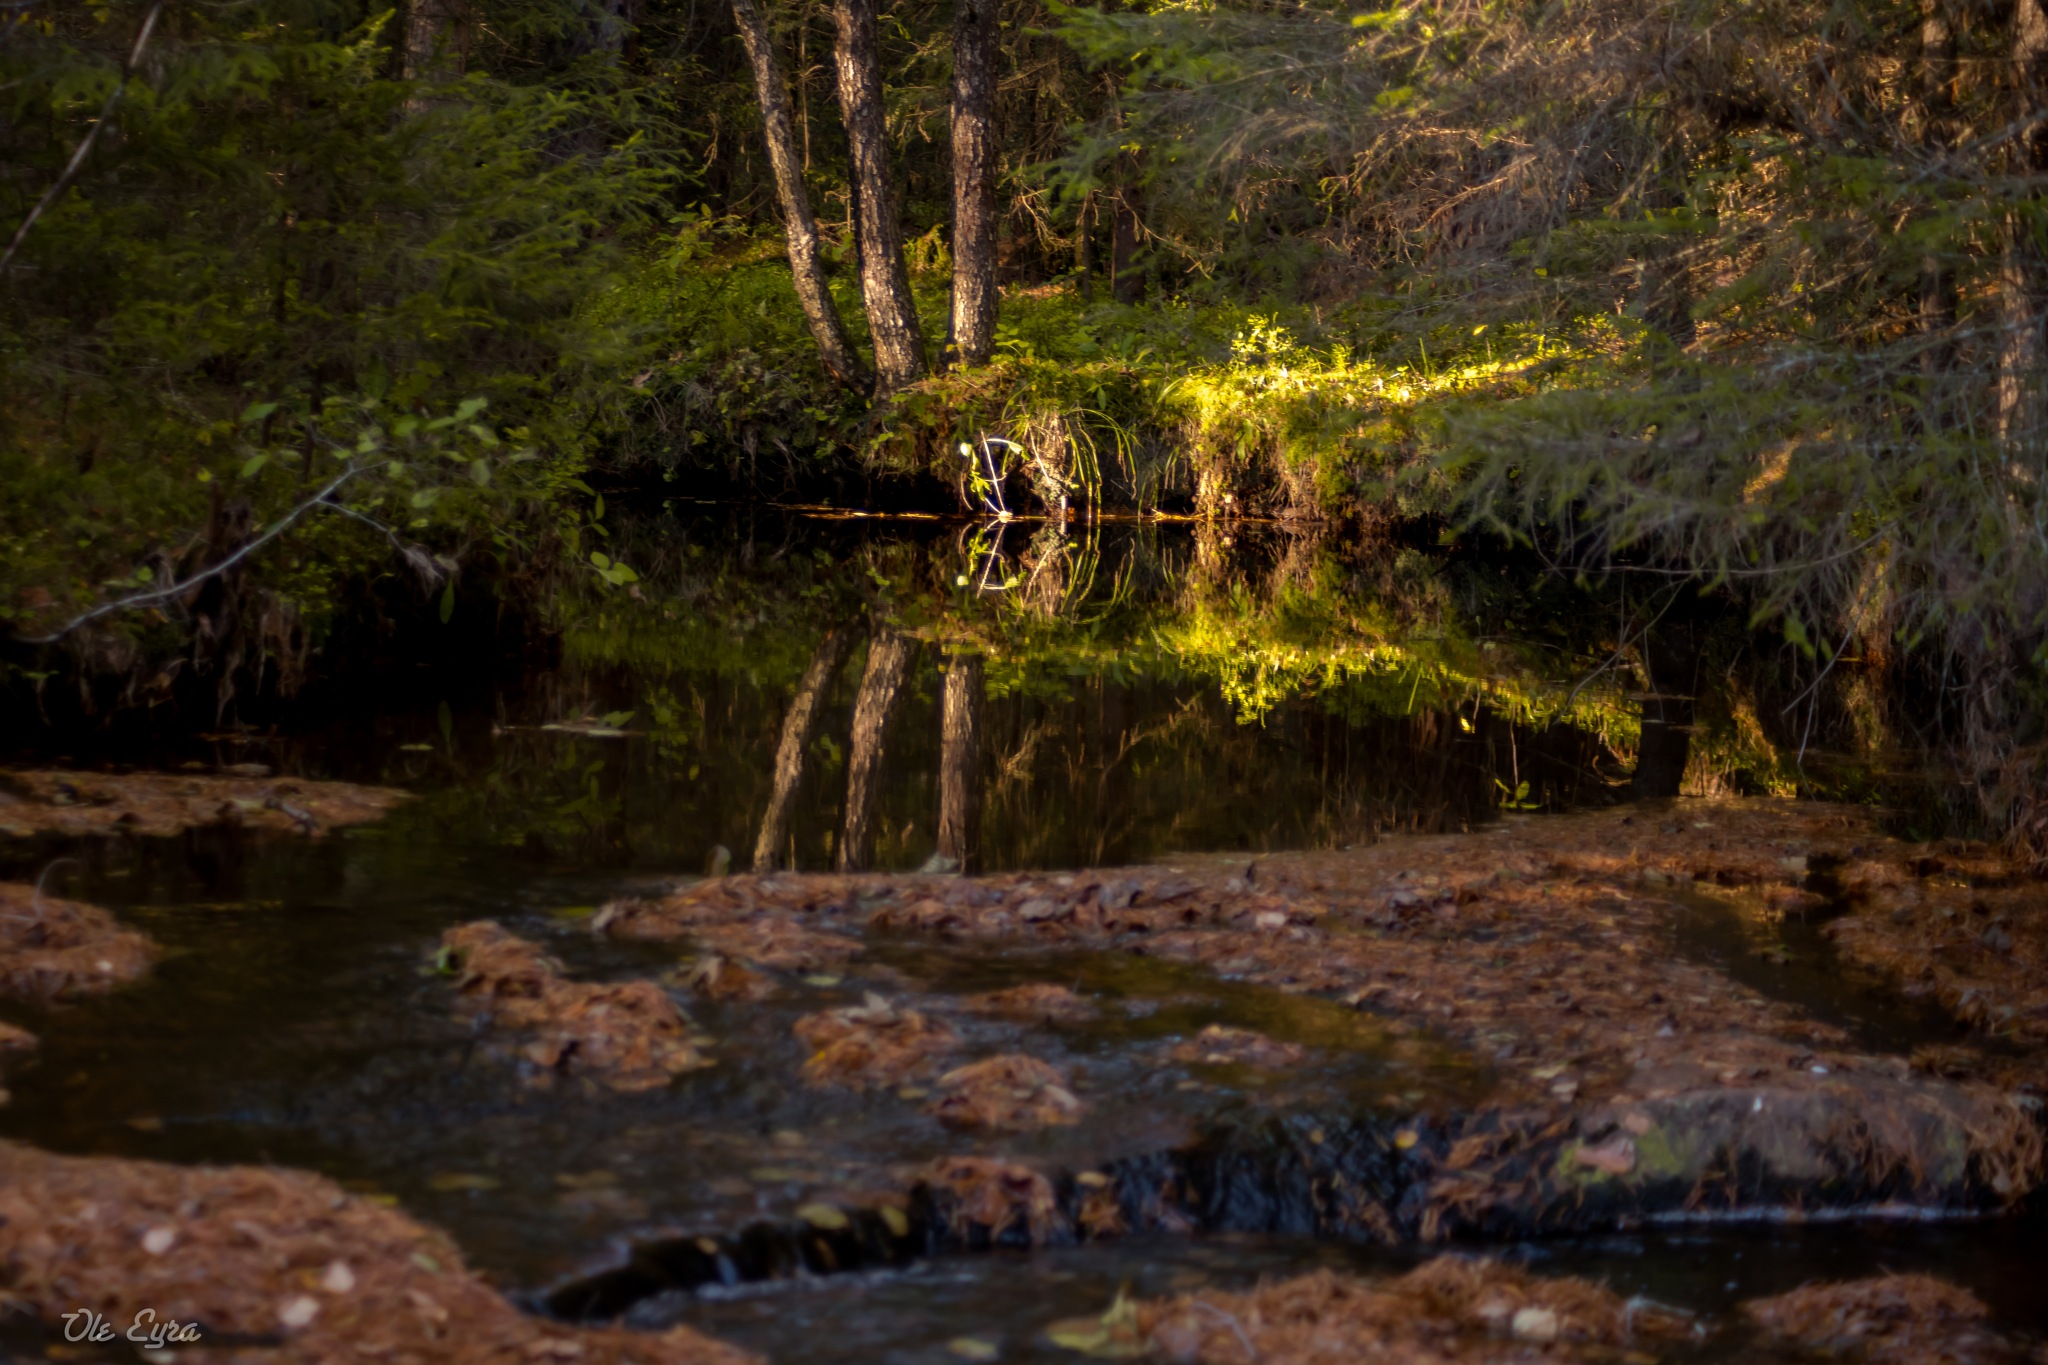 Glade by the river pond by Ole Morten Eyra